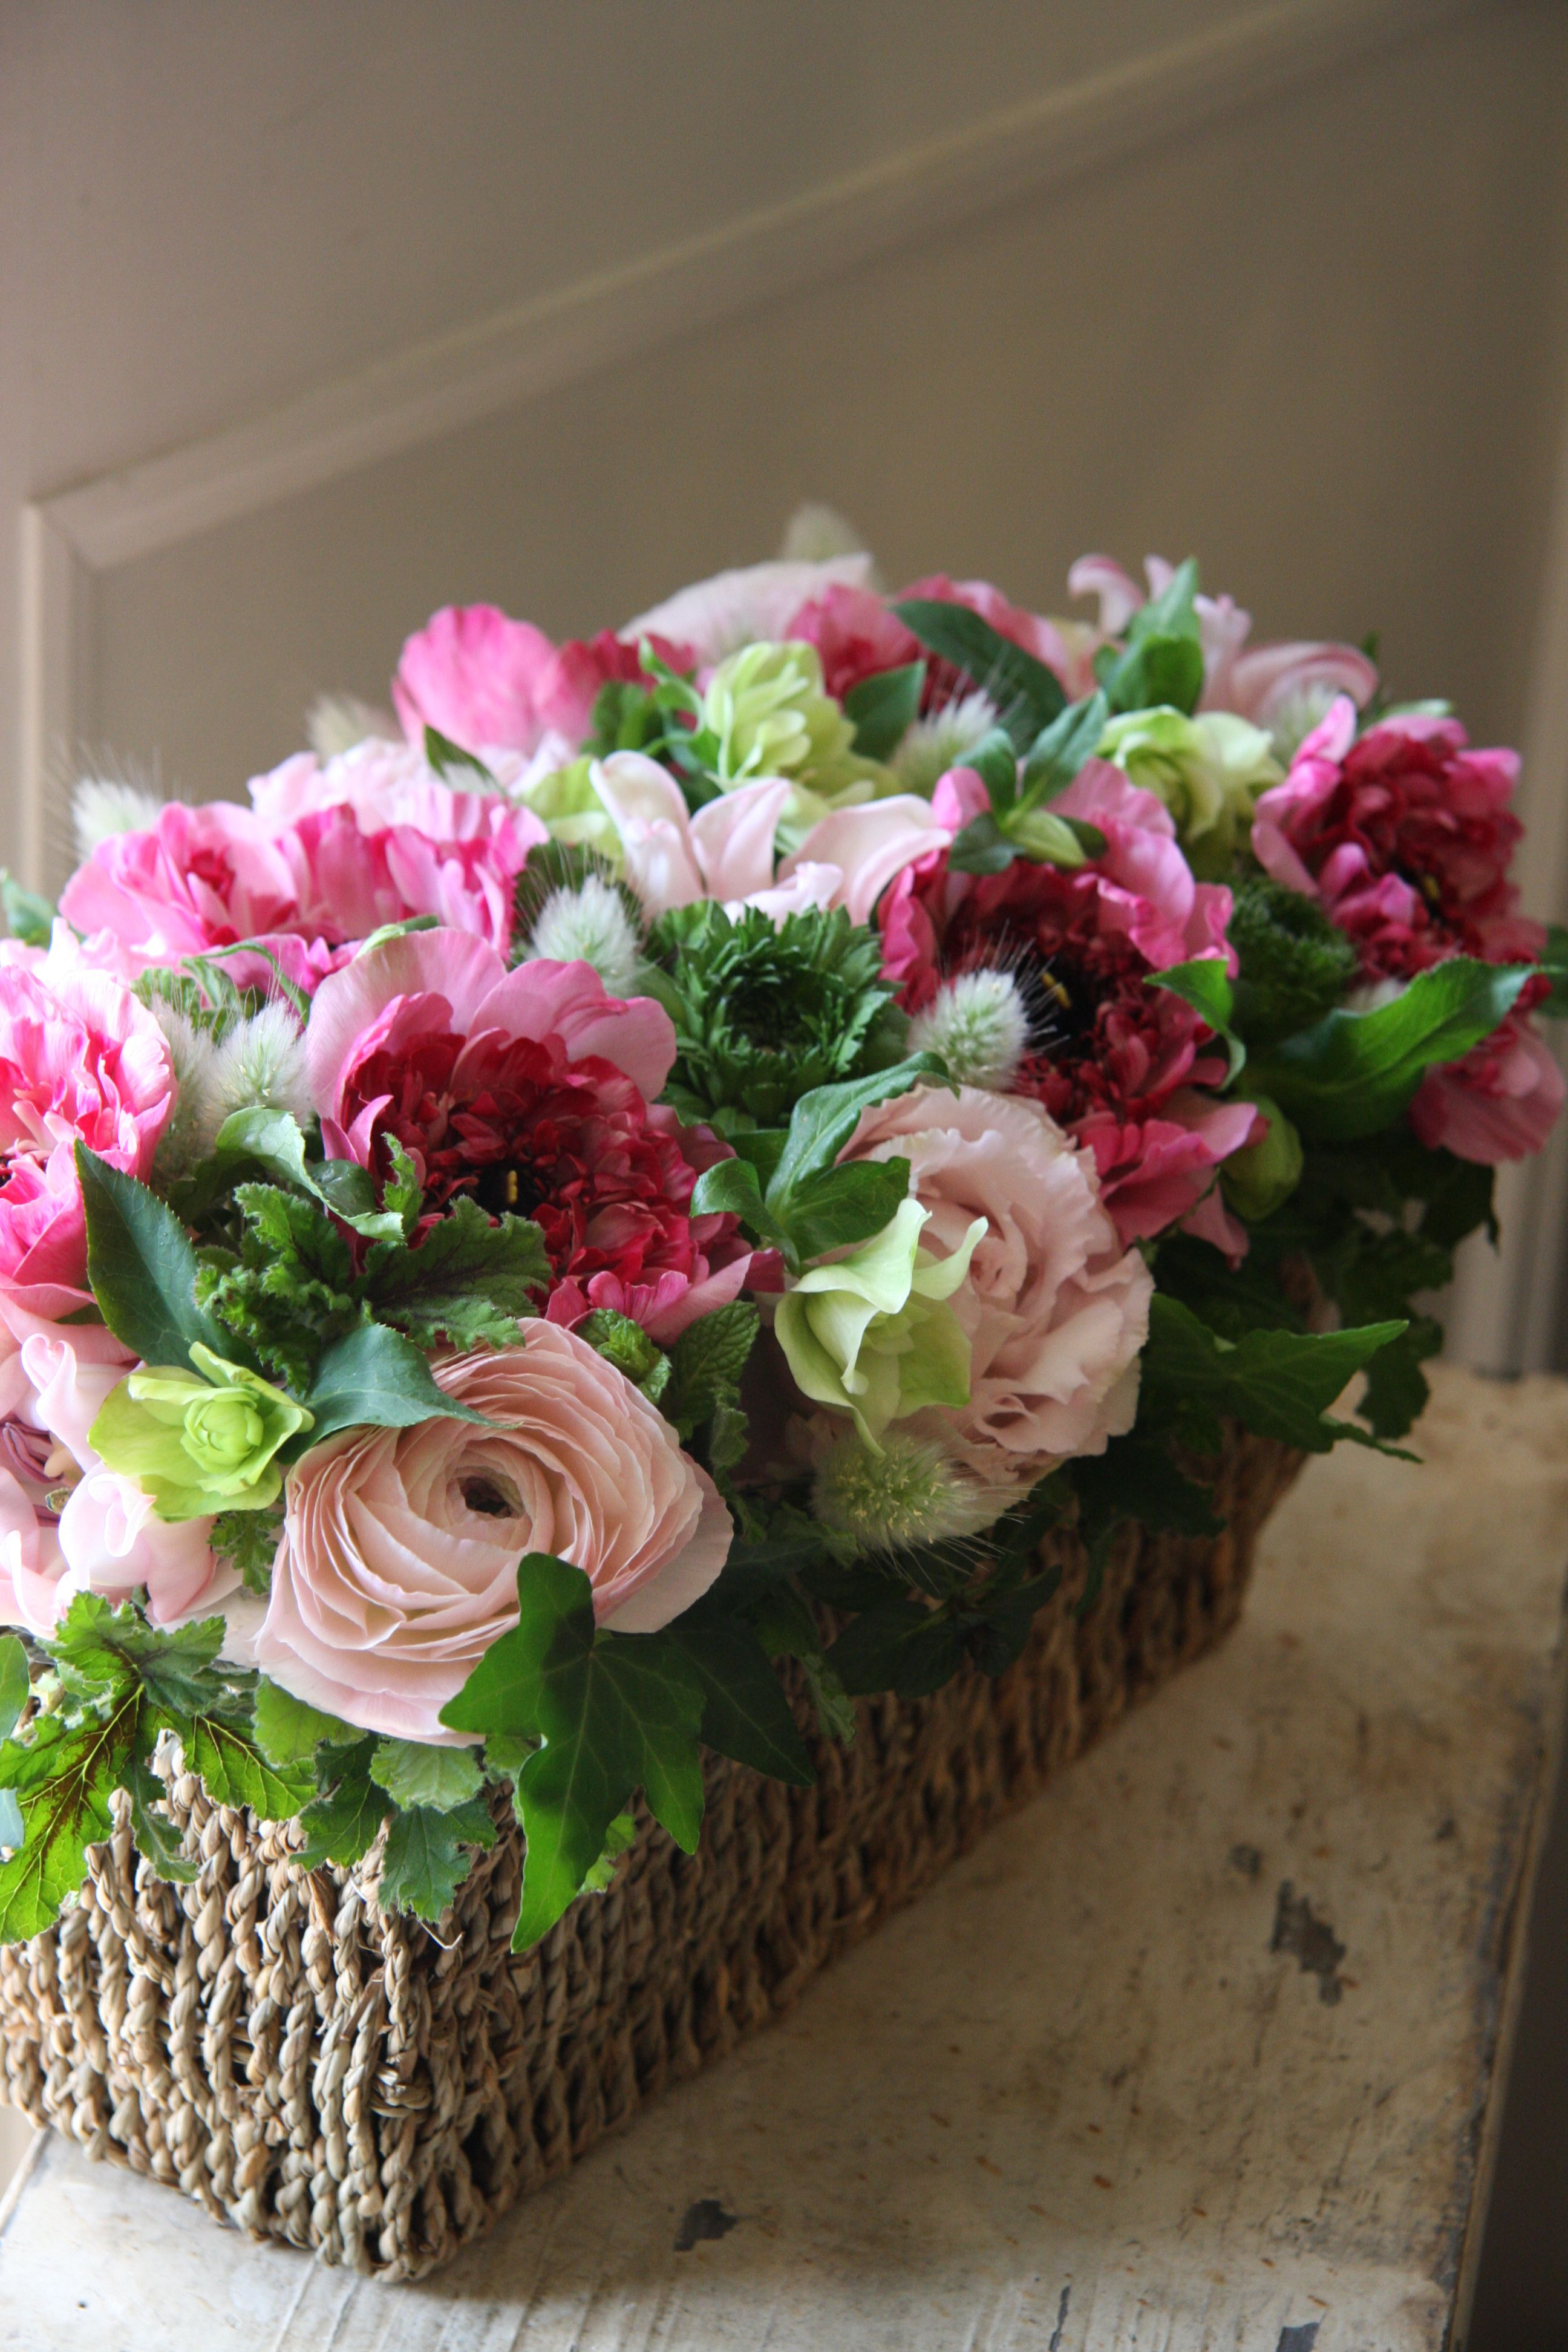 Beautiful floral arrangement in basket | All Things Floral ...